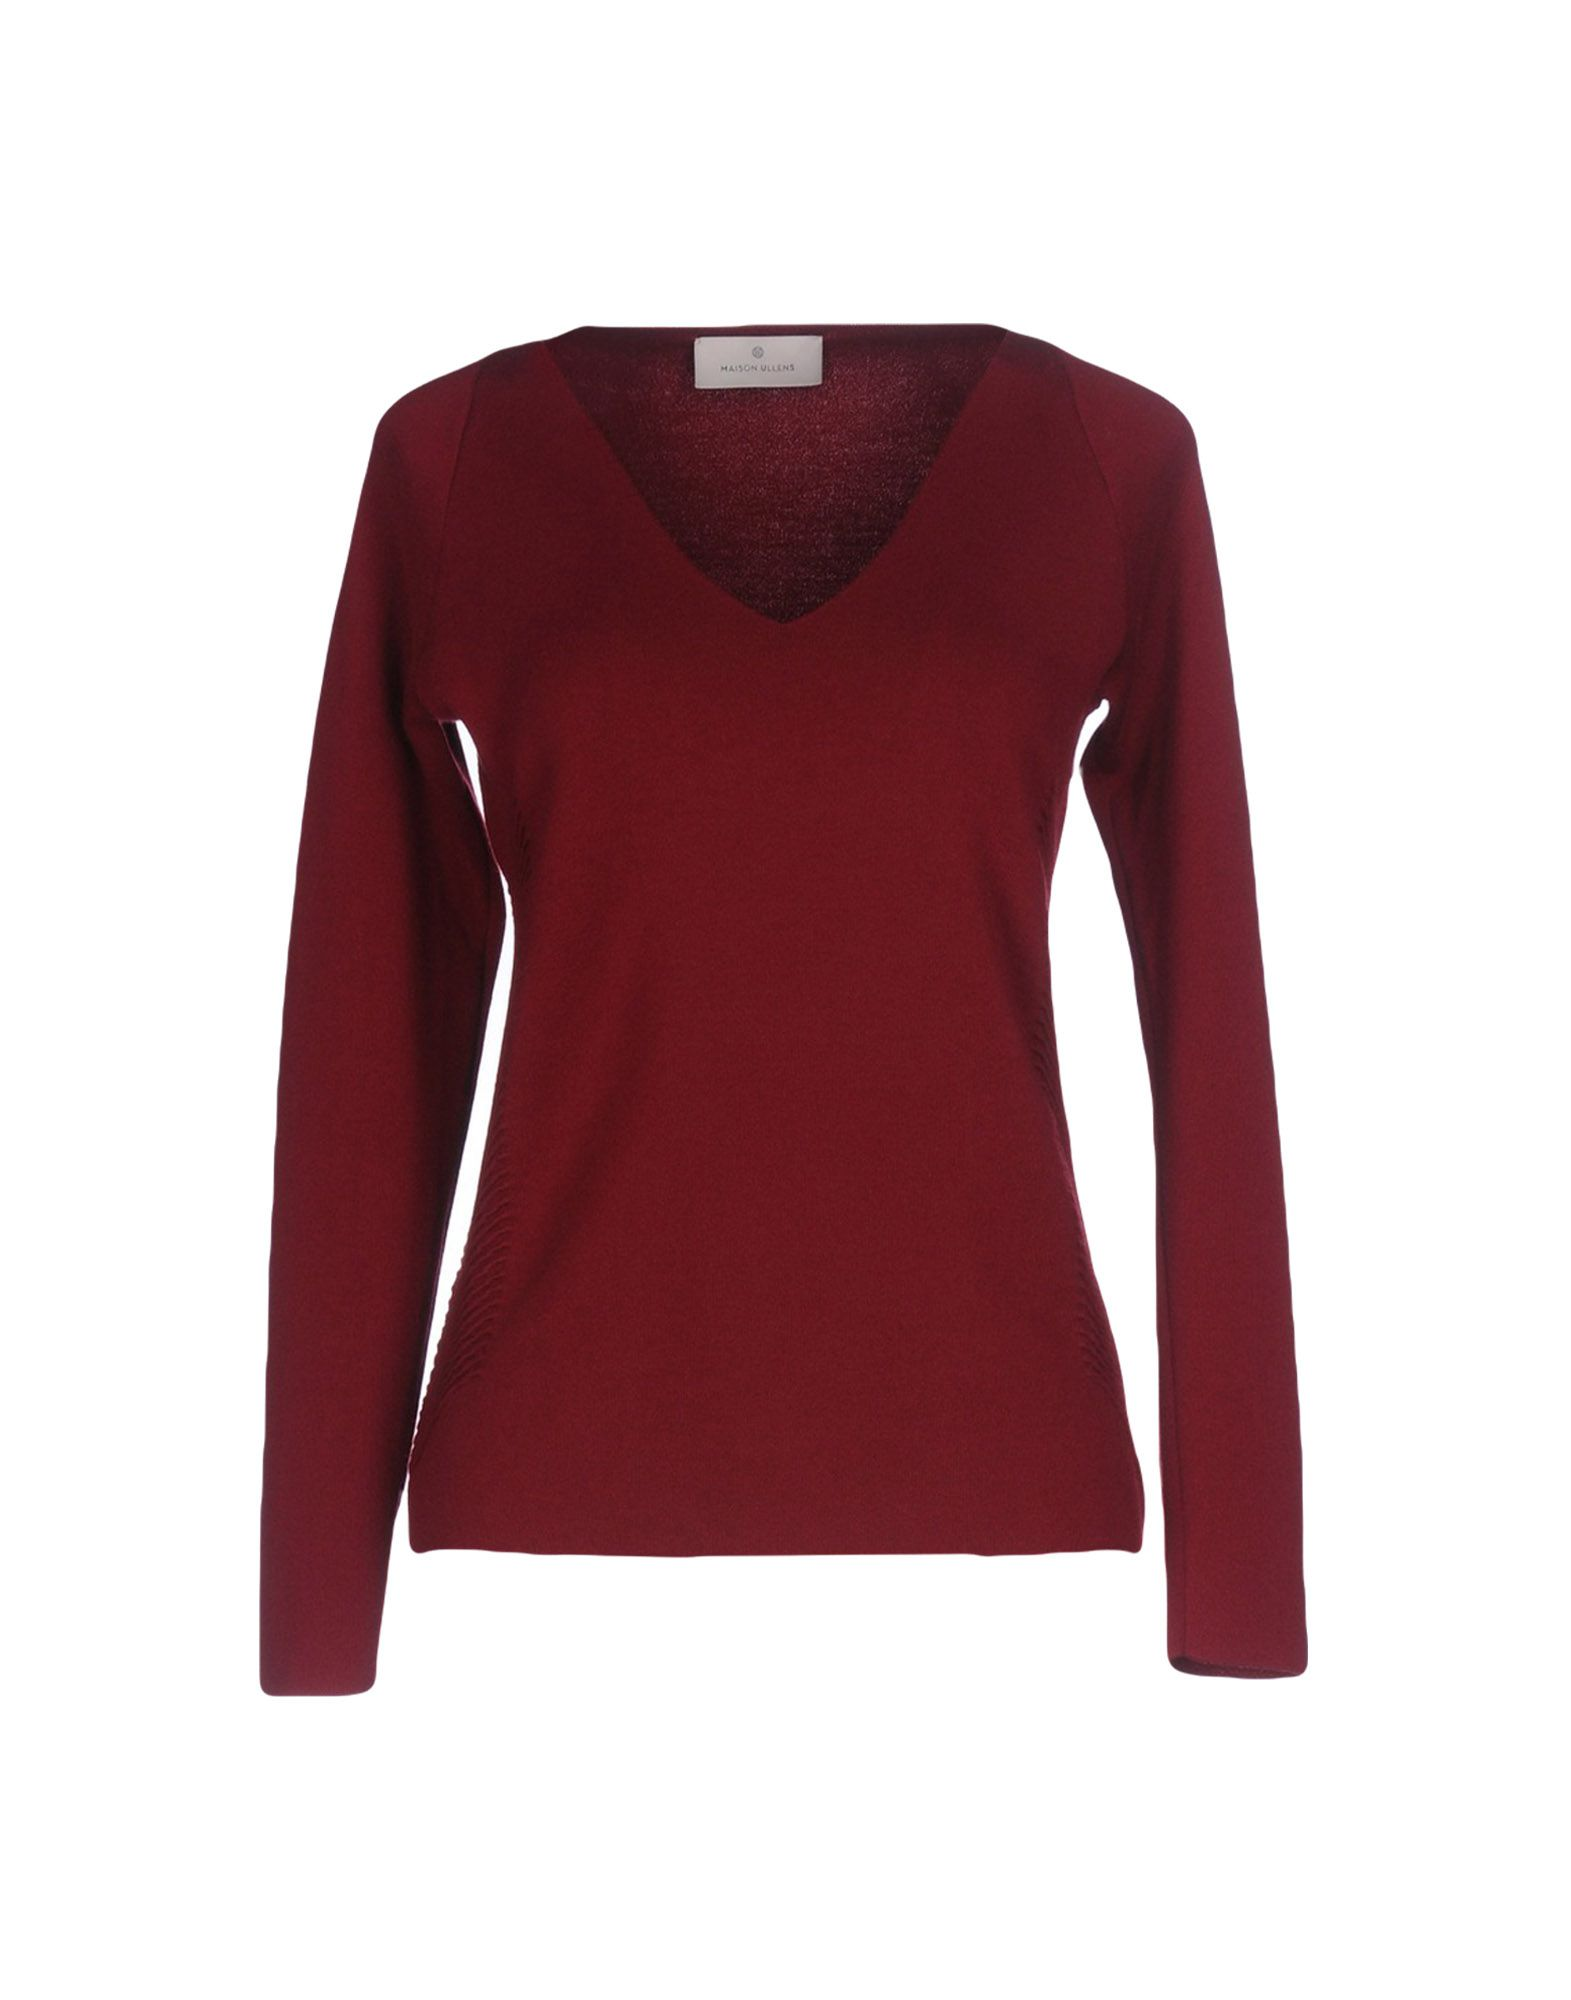 MAISON ULLENS Cashmere Blend in Brick Red